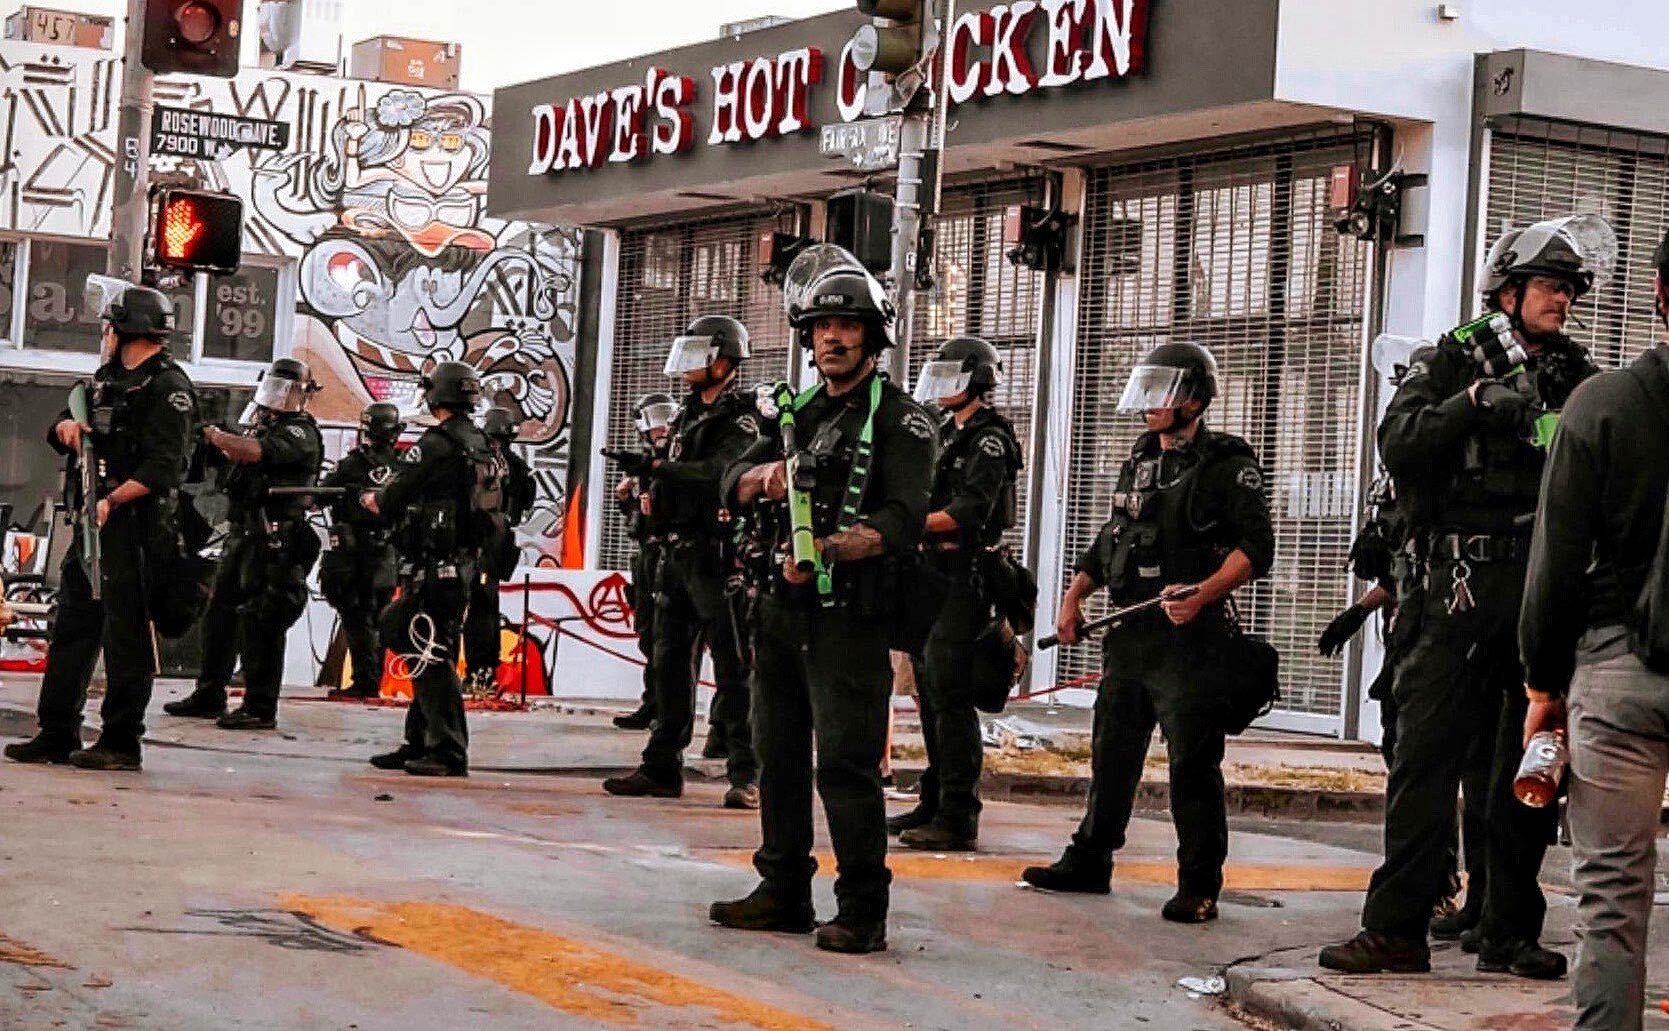 Police stand watch over Fairfax District in front of forthcoming restaurant Dave's Hot Chicken